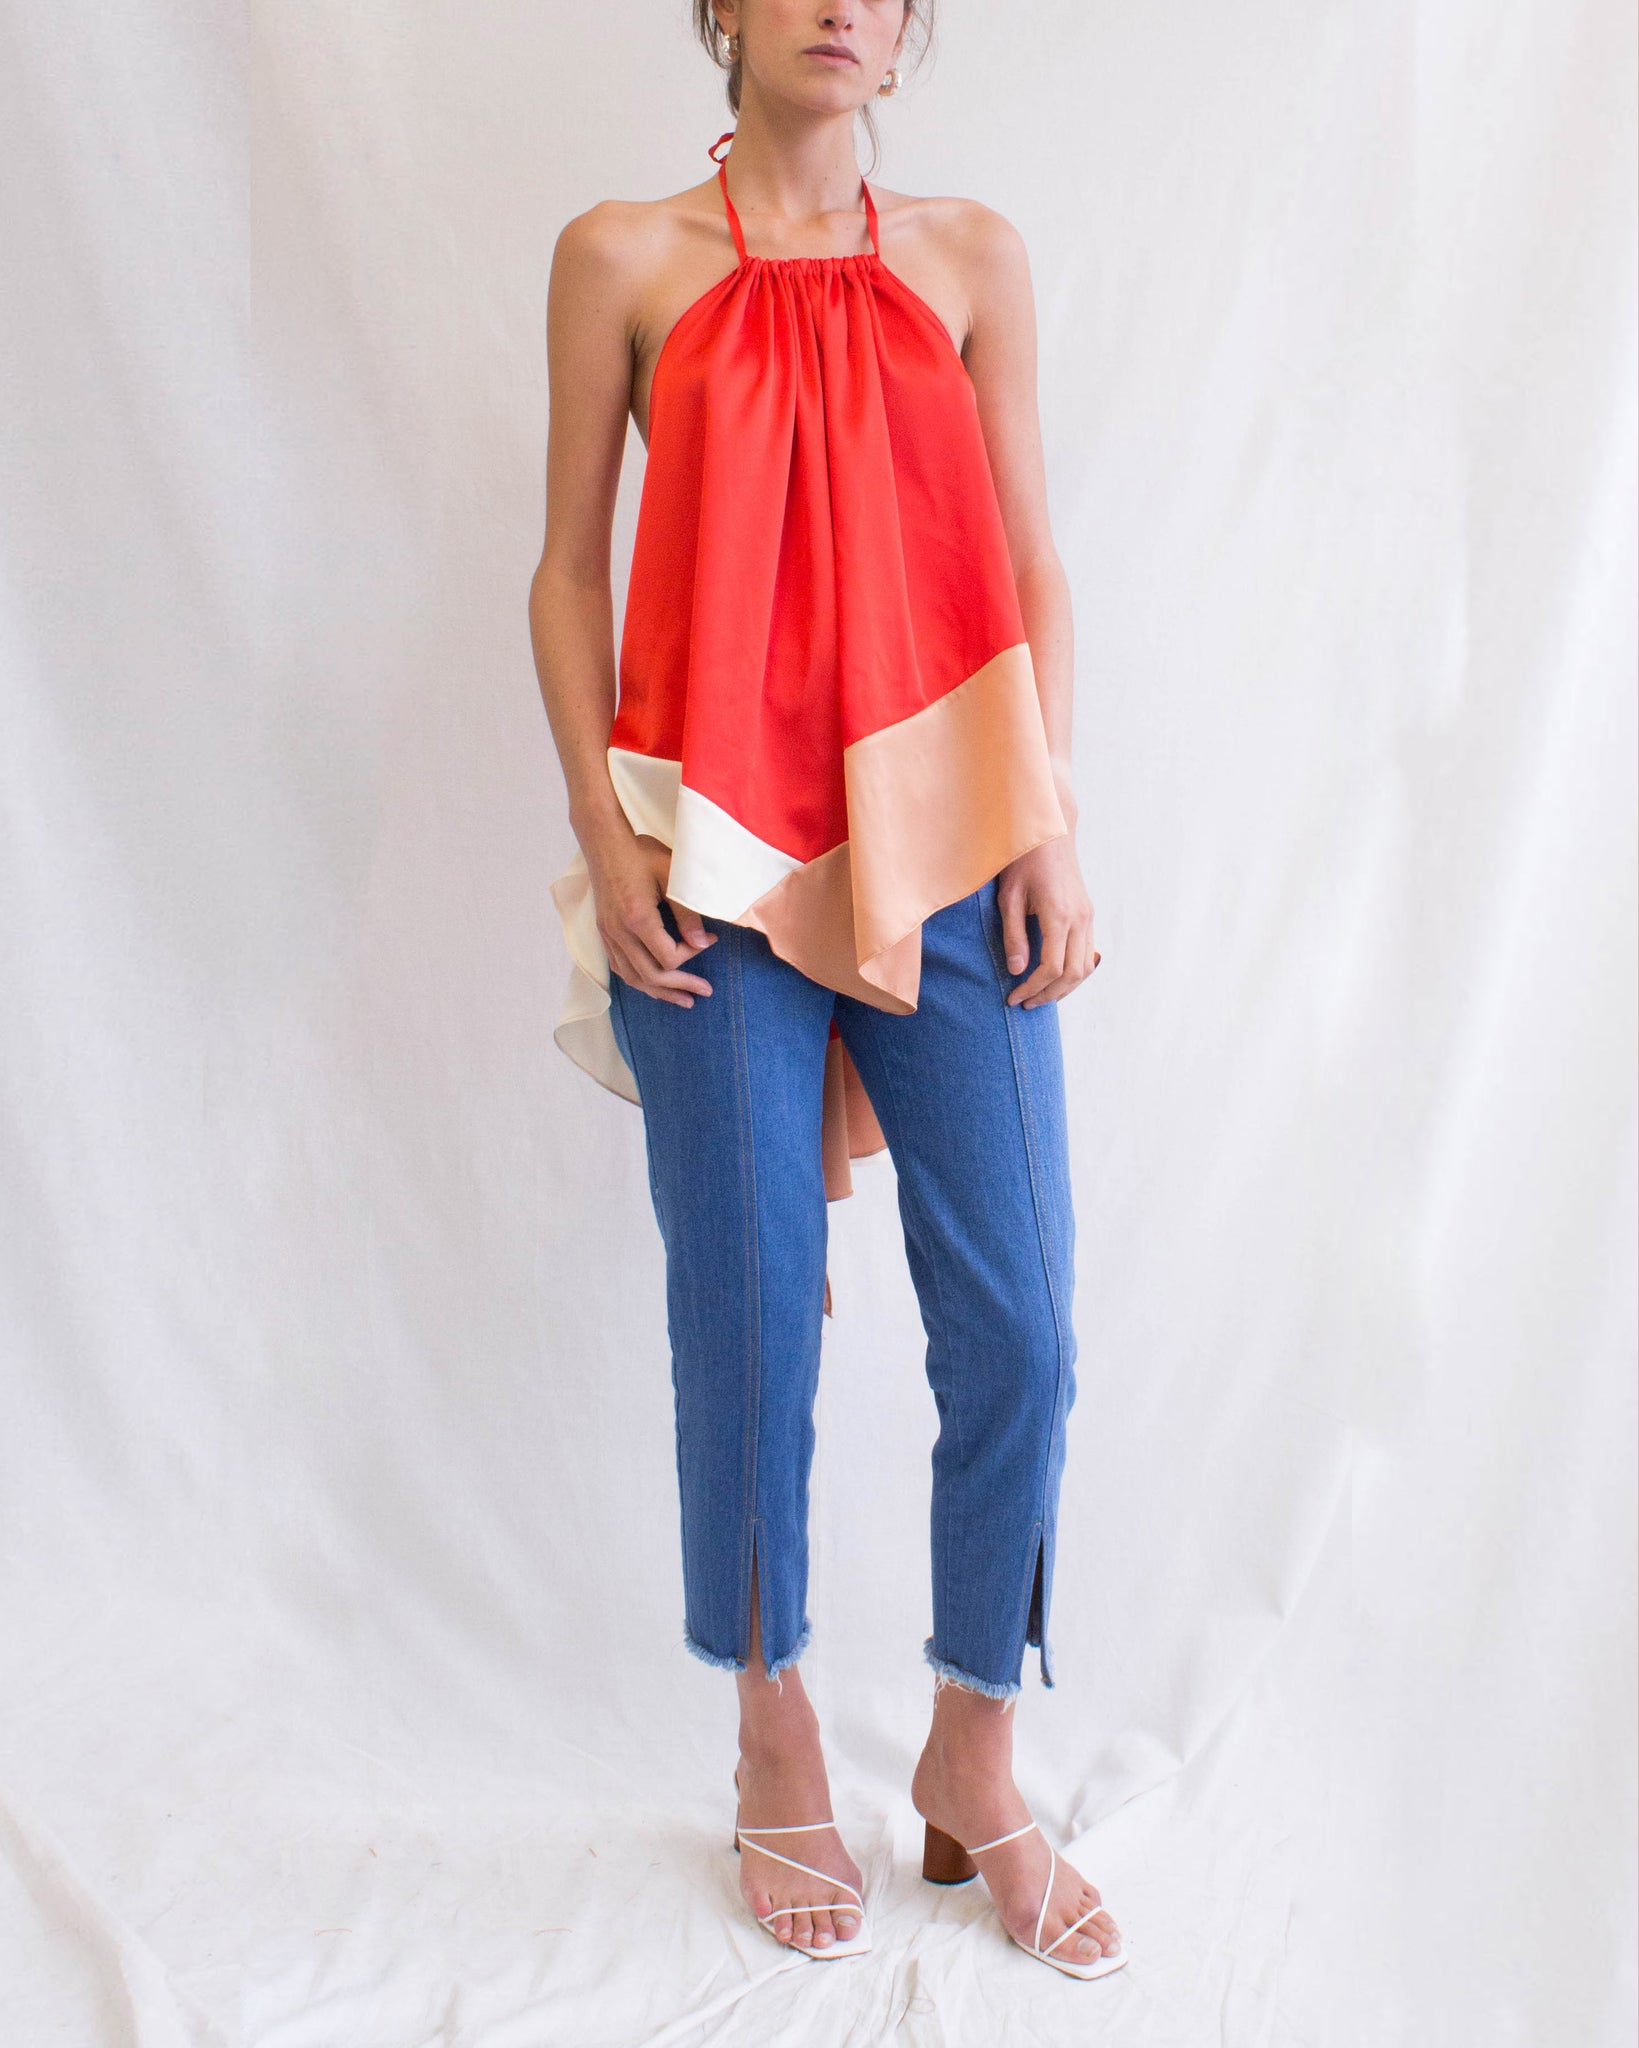 Erin Top Satin Red + Ivory + Blush - SPECIAL PRICE